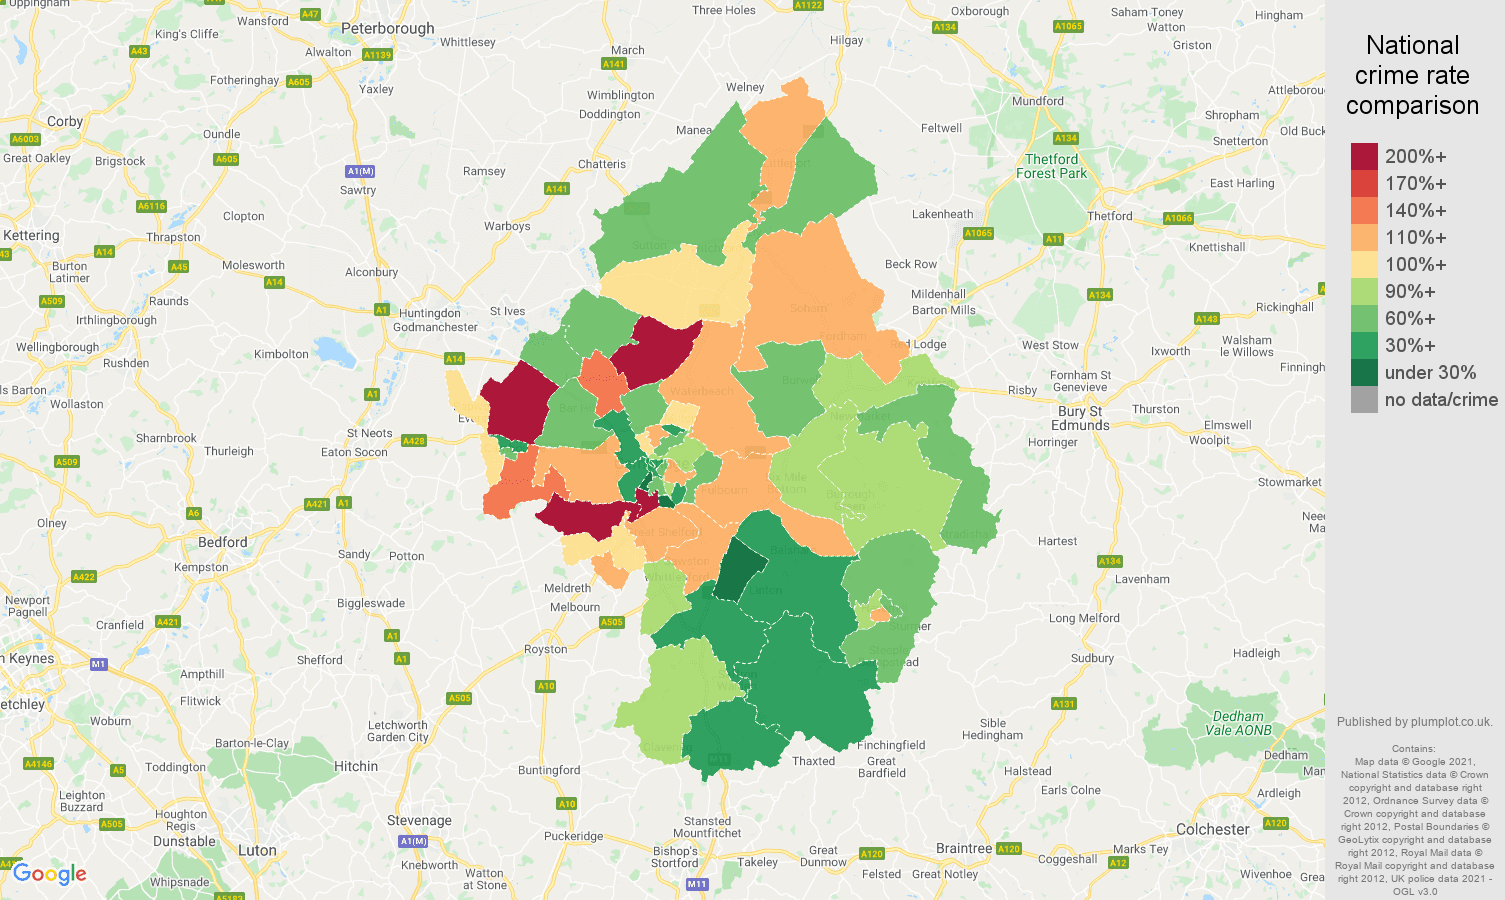 Cambridge burglary crime rate comparison map